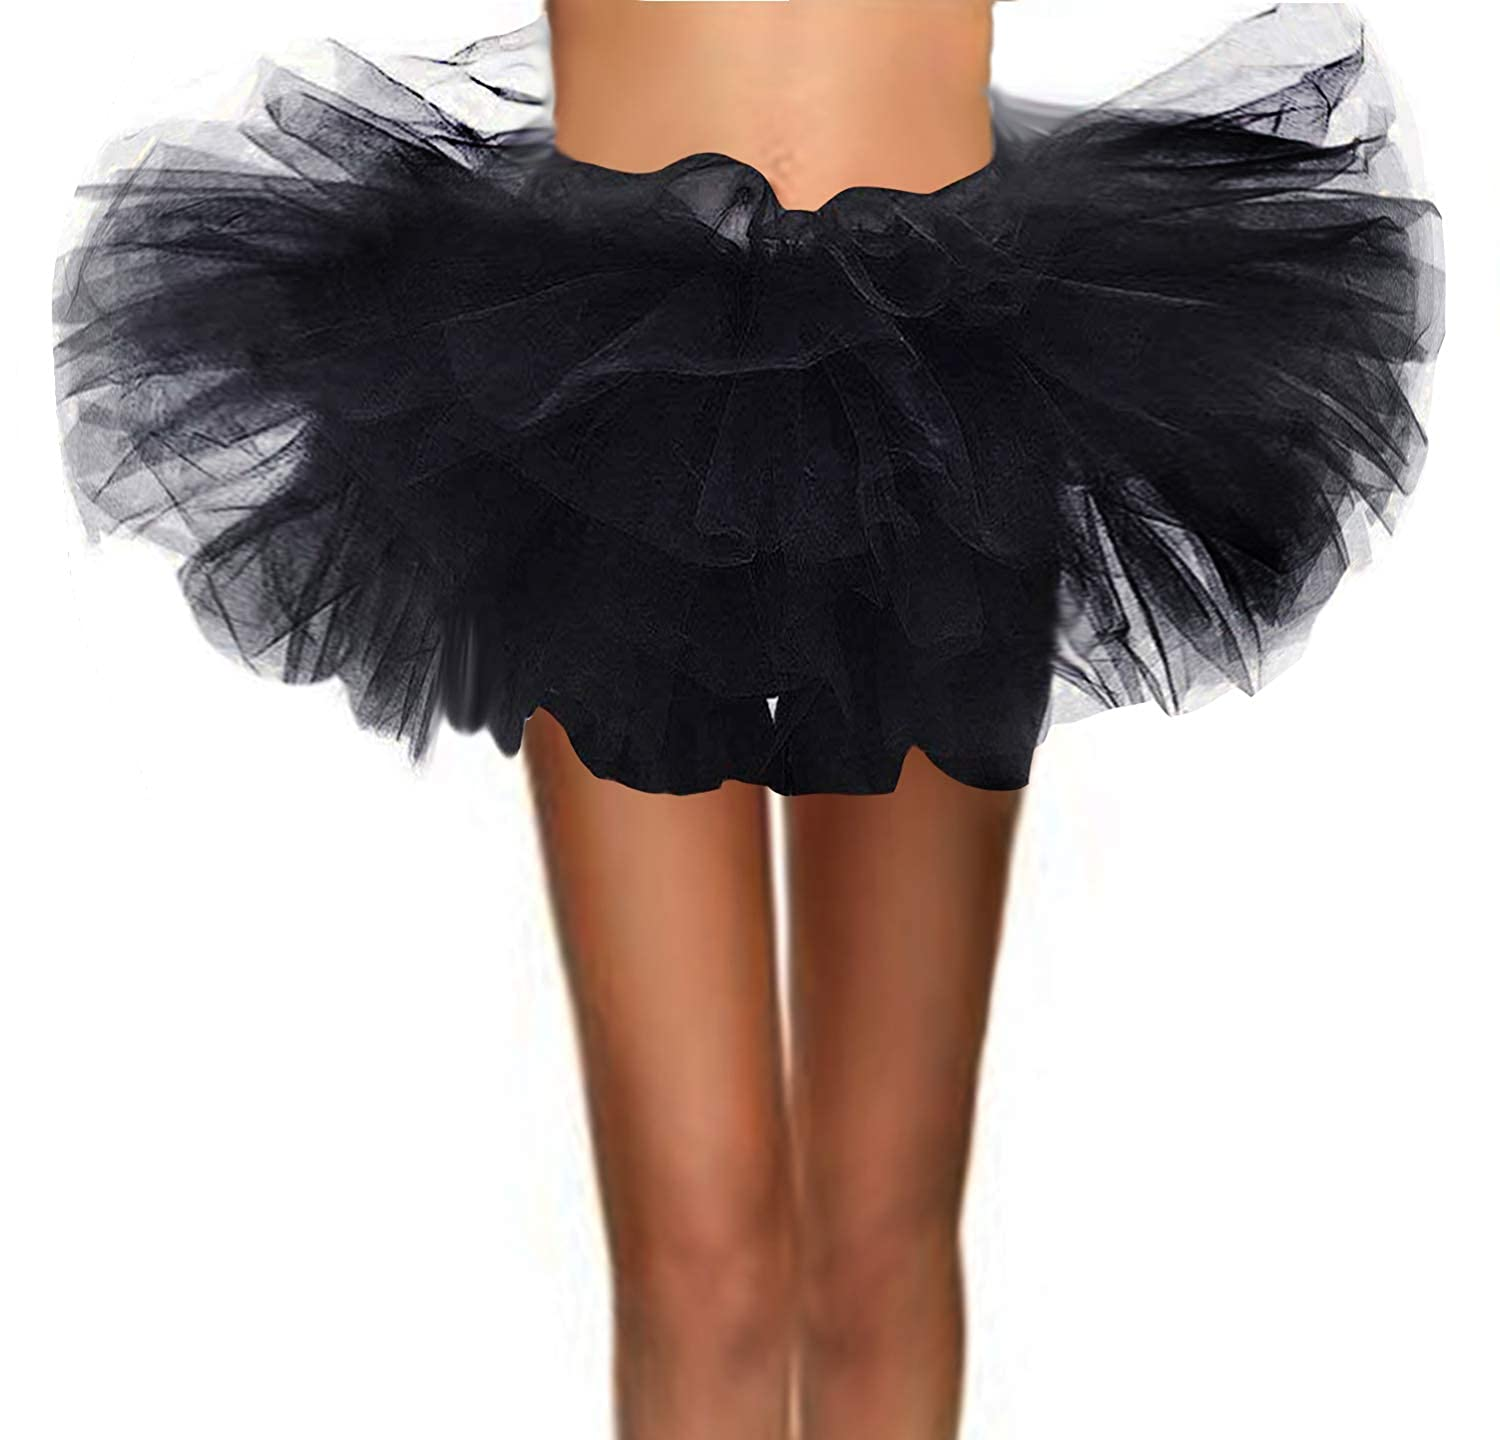 de7cdb288 ✰Features: Adult Tutu Skirt, Two Types: Mini and Short ✰Small Size fit:  US0-US14, Plus Size fit: US12W-US24W, Stretchy Elastic Waistband for  adjustment